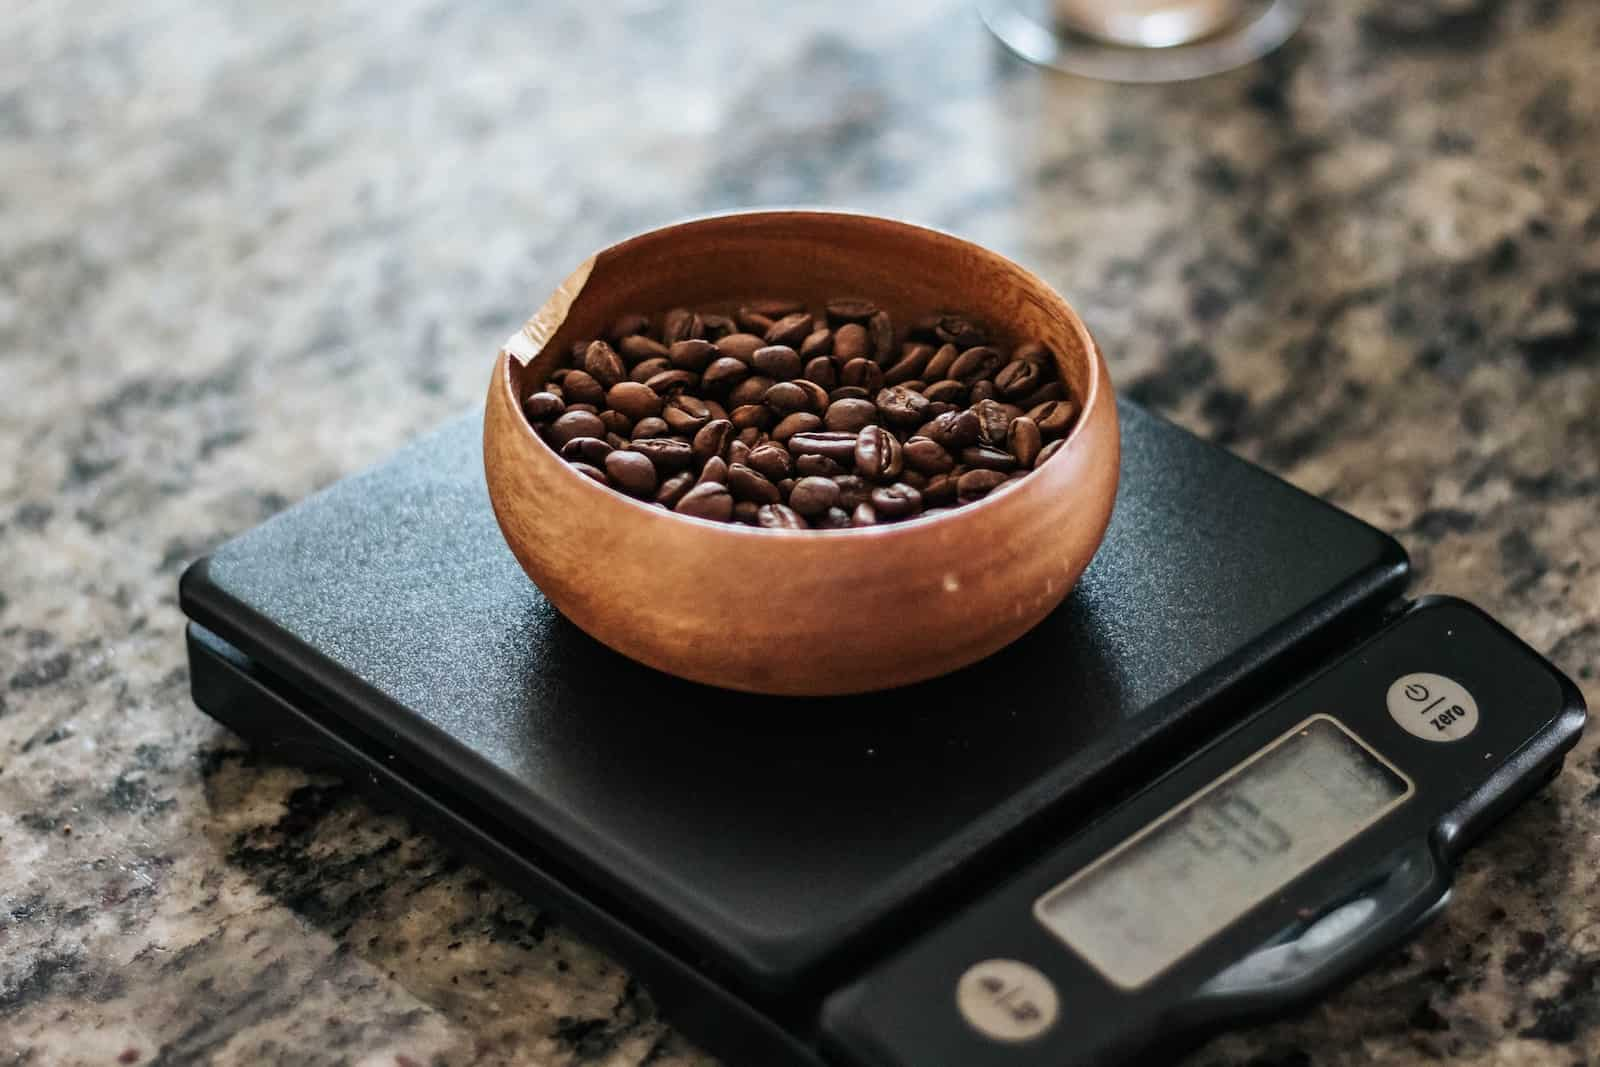 Weigh Coffee in scale